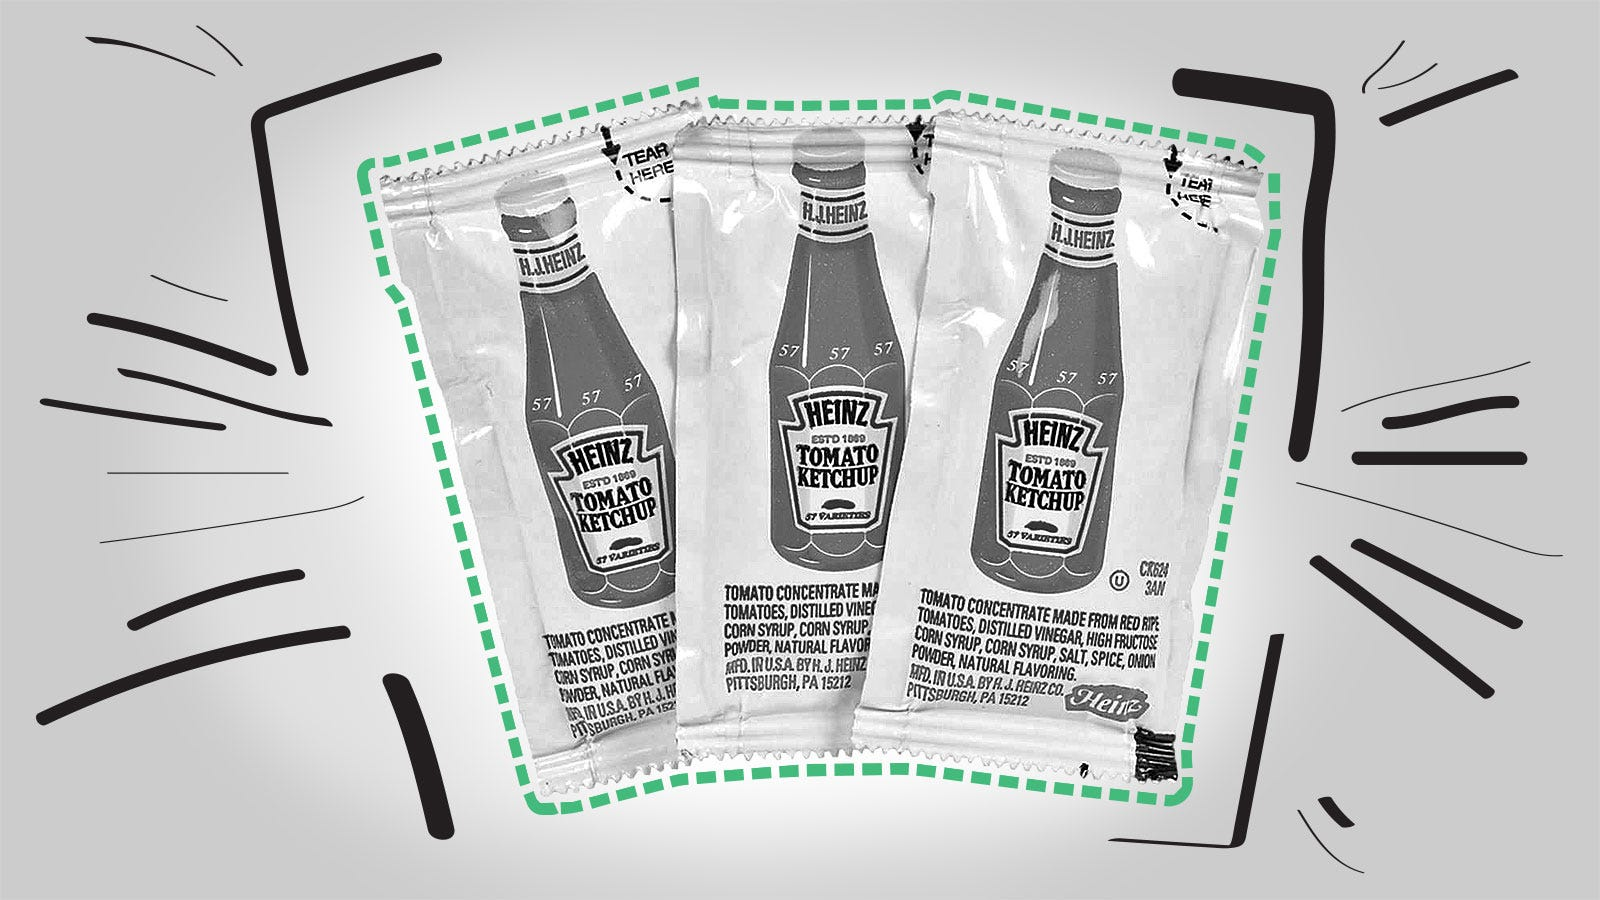 Ketchup brand Heinz ran into shortage issues in April 2021.